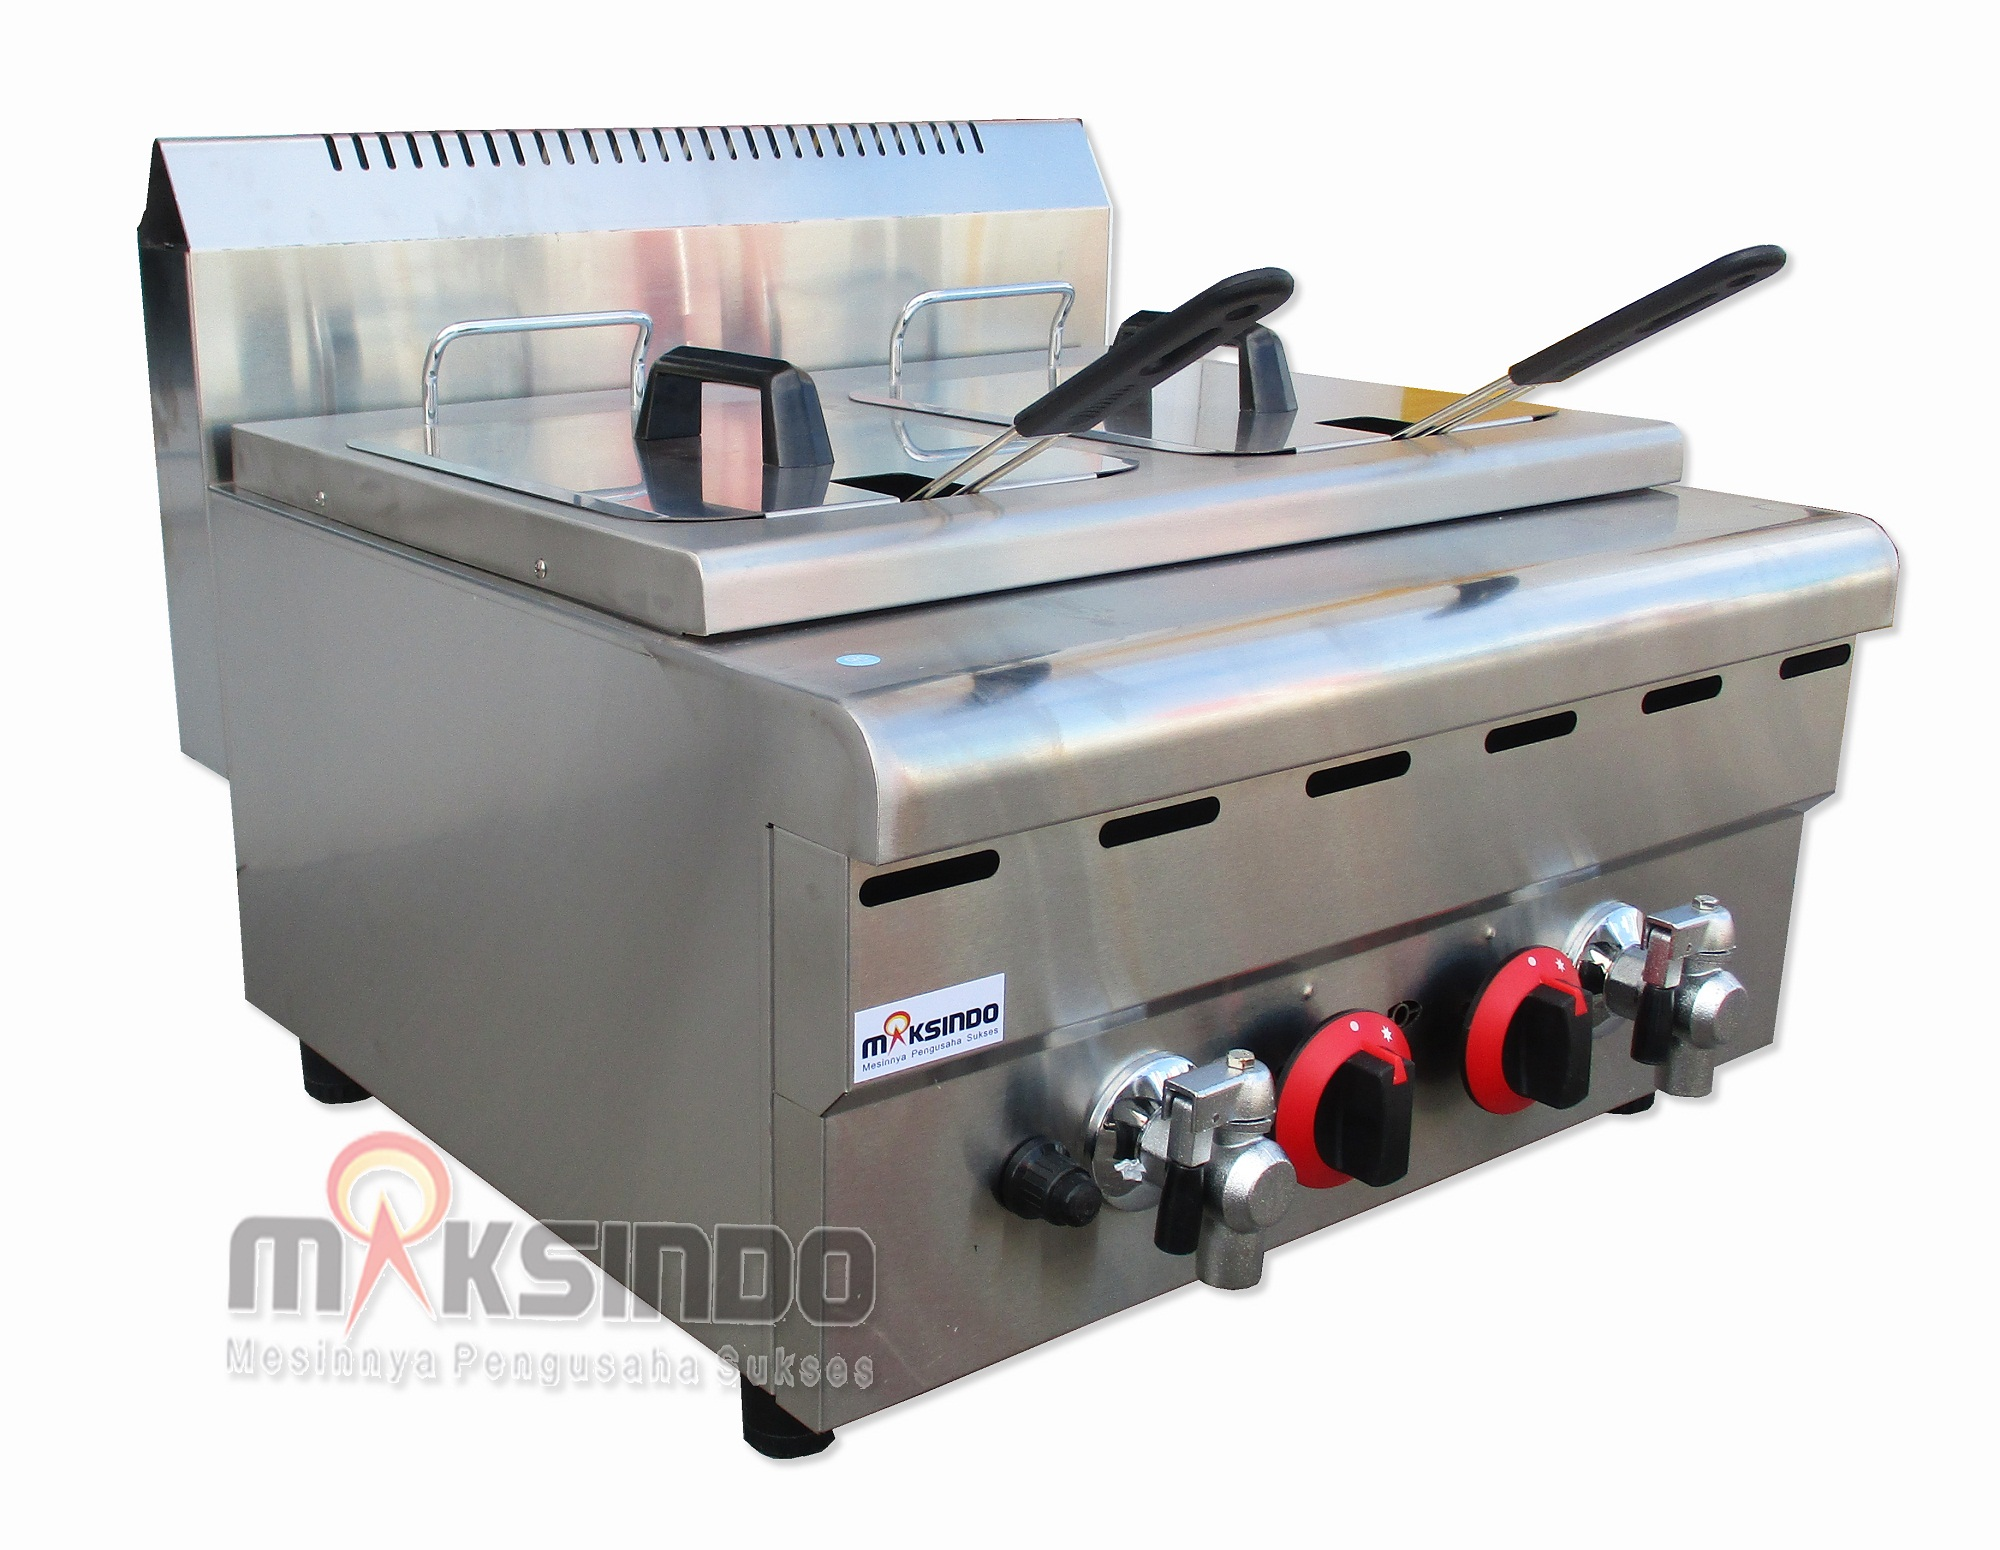 Jual Counter Top 2-Tank 2-Basket Gas Fryer di Blitar